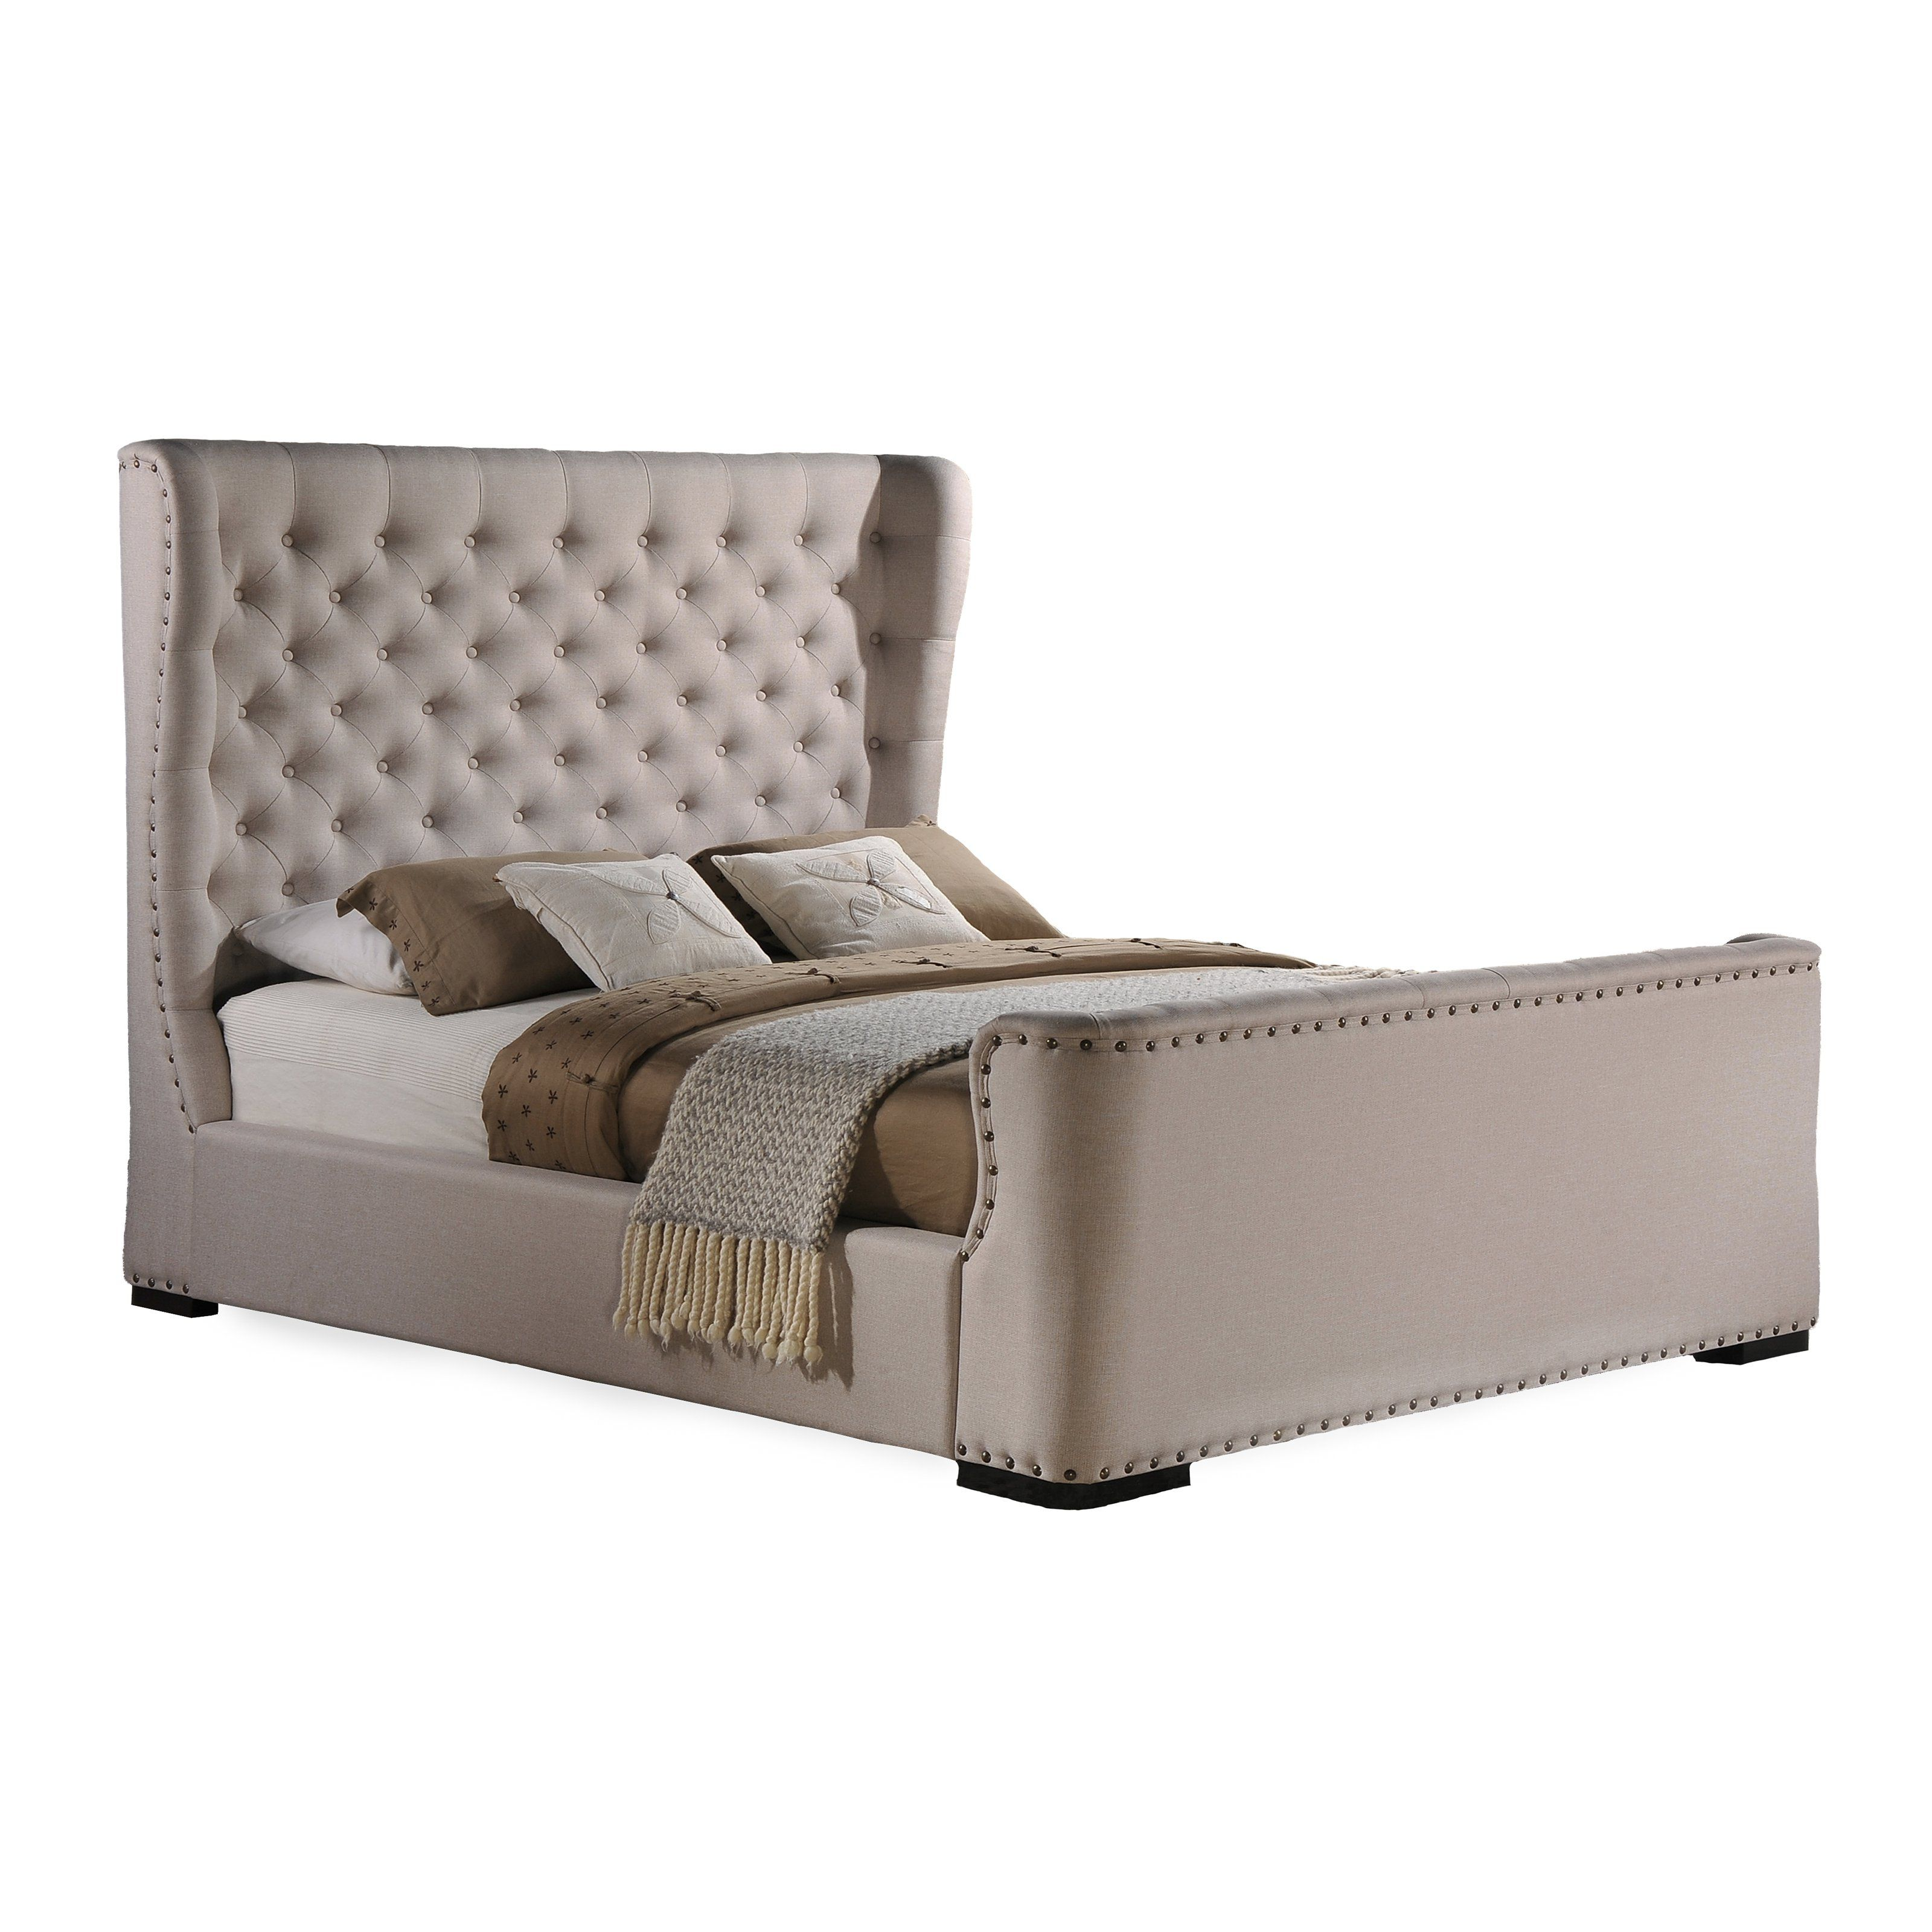 Baxton Studio Zuckerman Upholstered Wingback Platform Bed   Sleep Like A  King (or Queen)